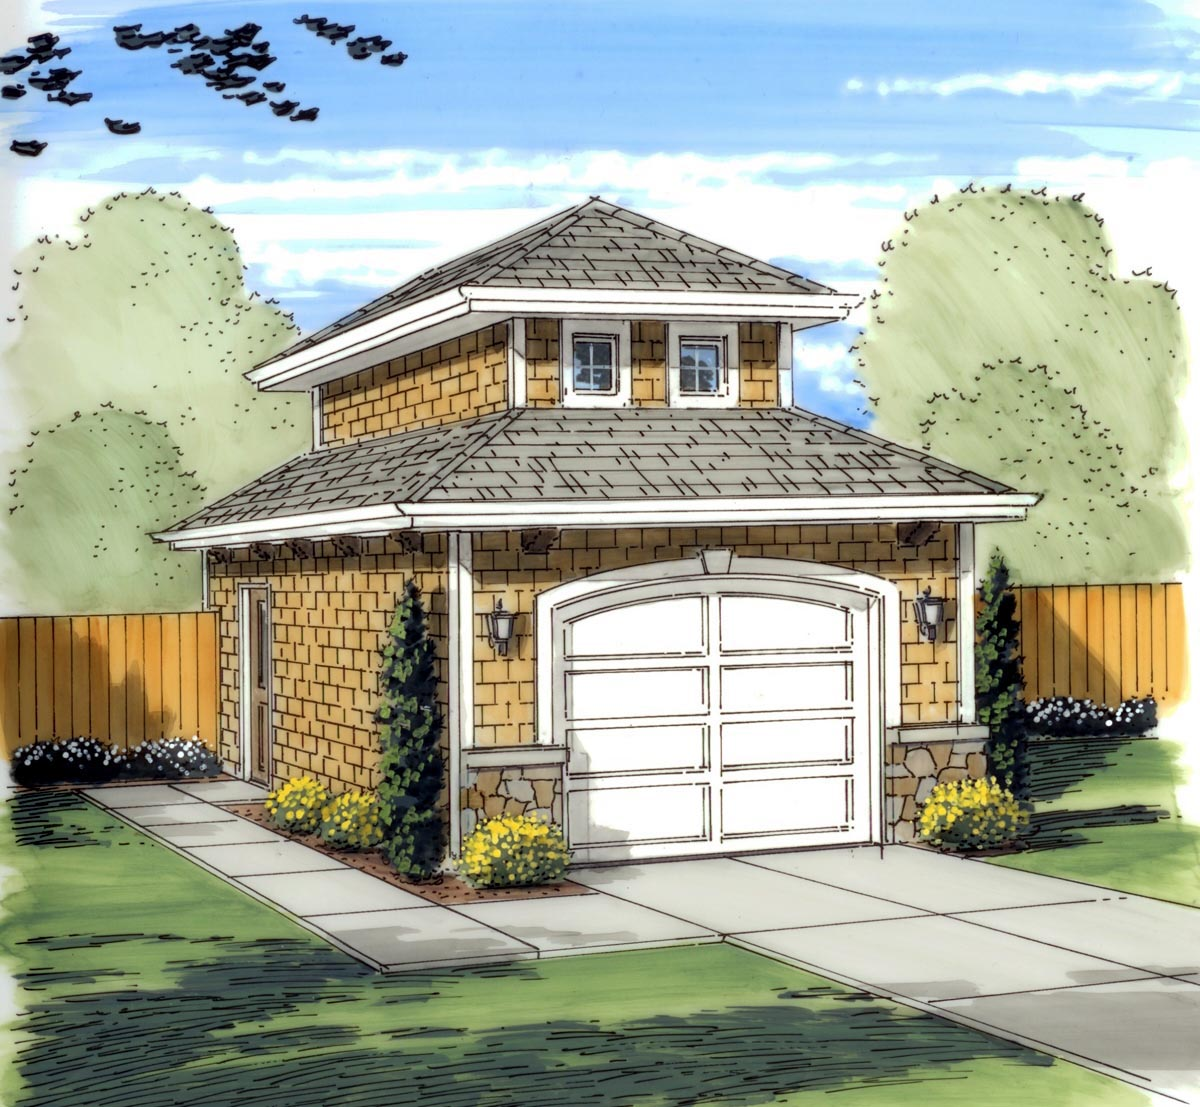 Garage Plan 95826 At Familyhomeplans Com: Traditional Style Garage Plan 41134